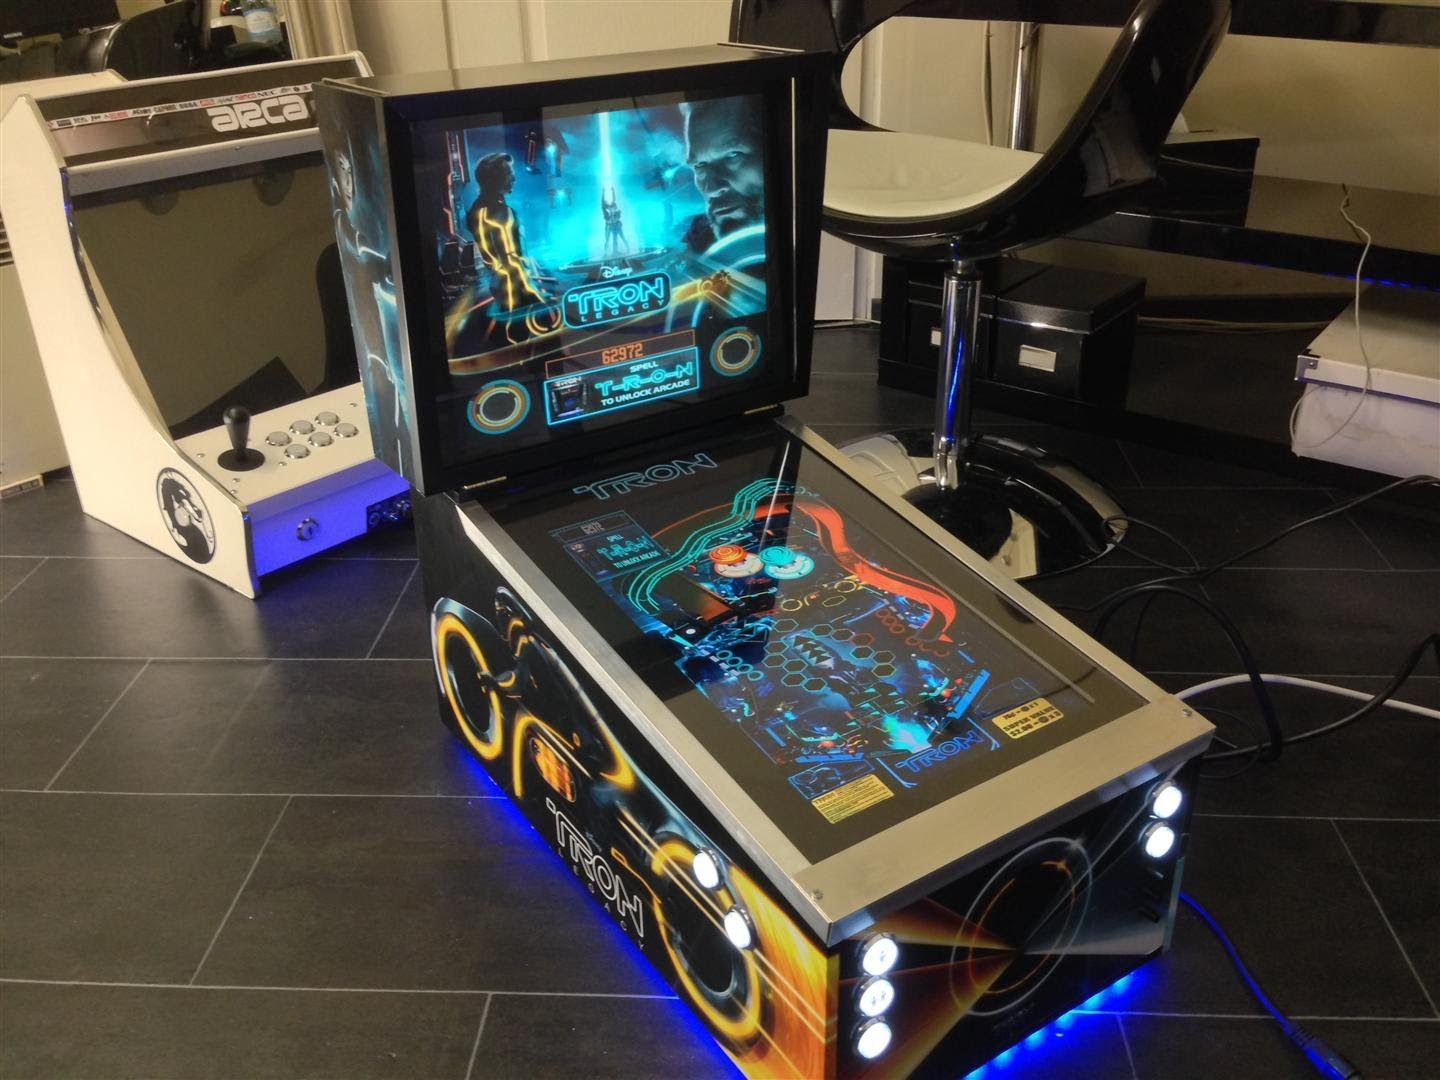 Pincab Mini TRON Future Pinball X Namsan Part 1/3 | Pinball & Video